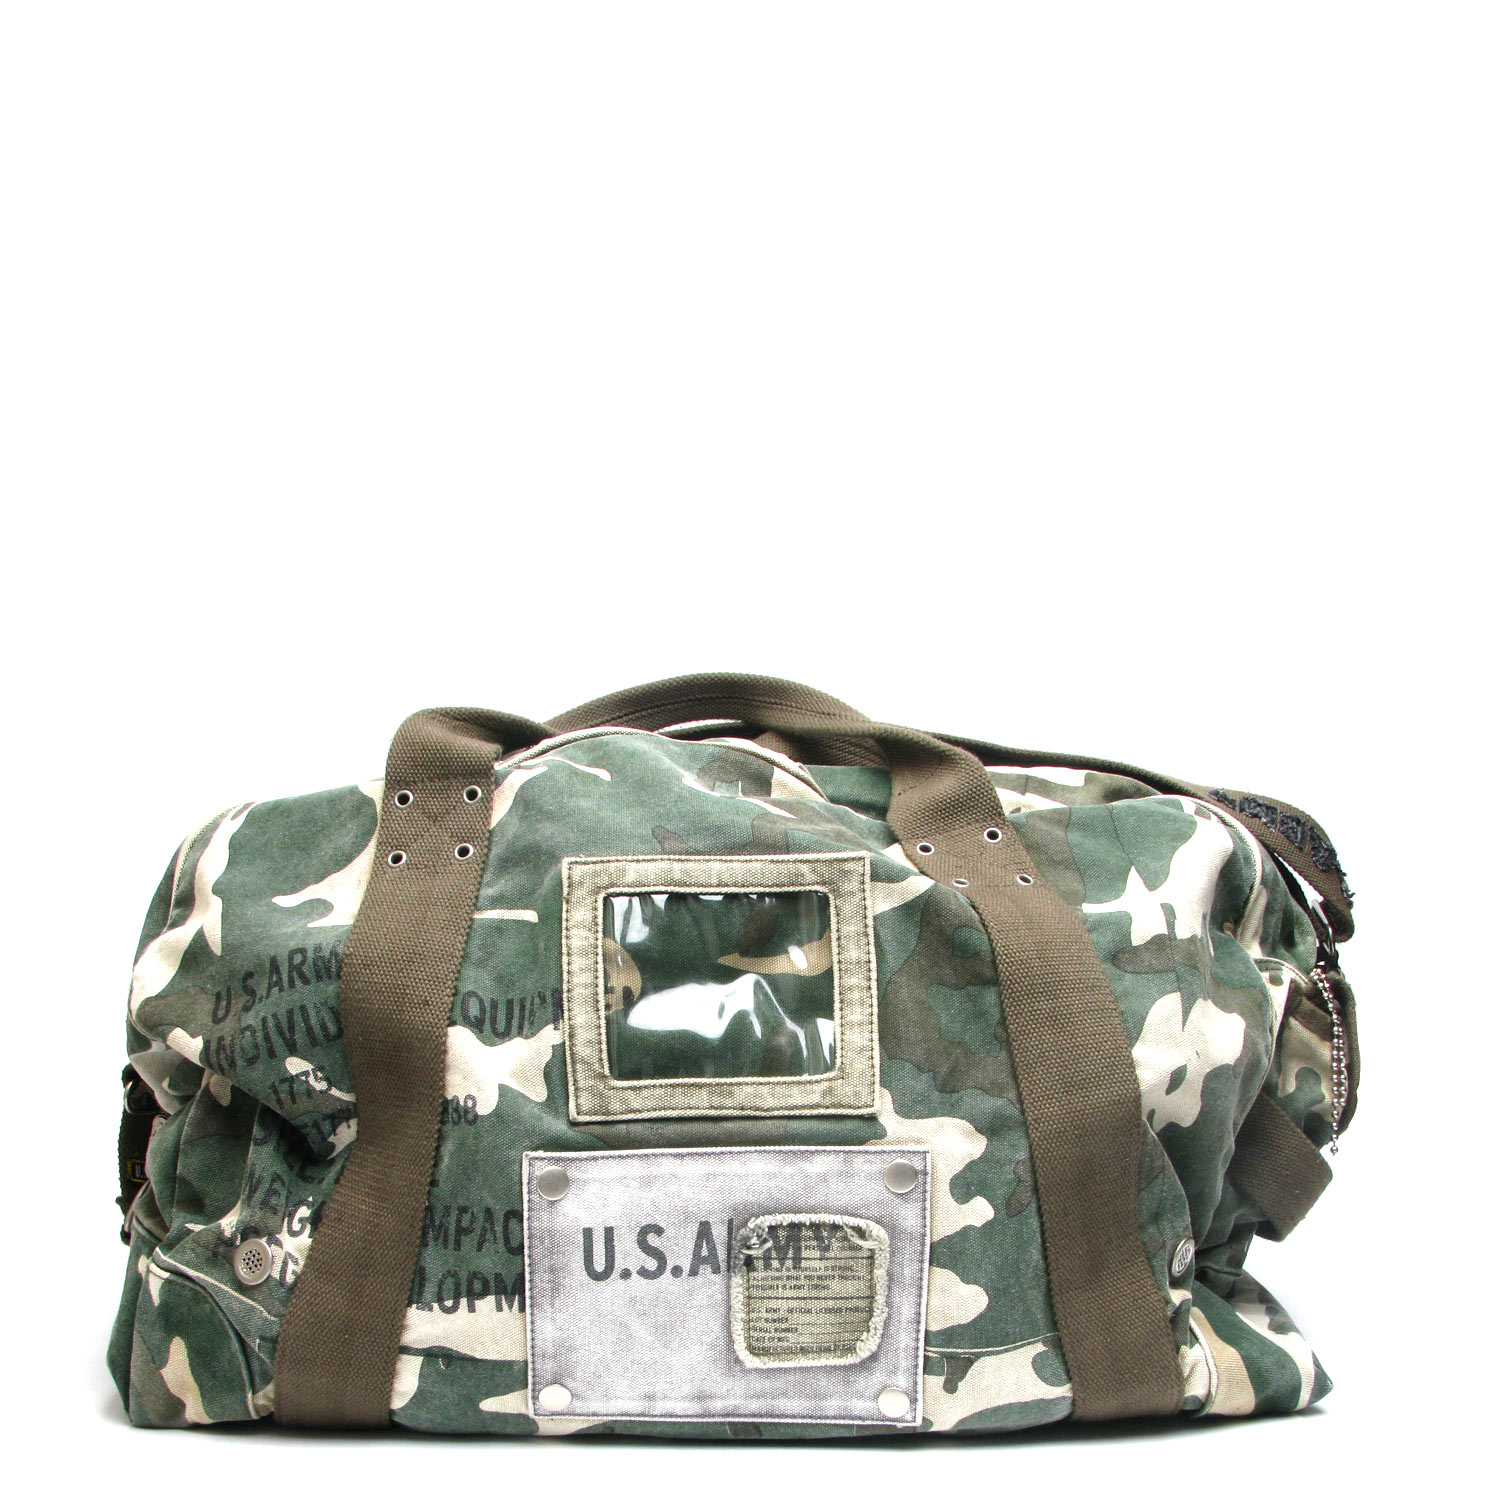 US Army Bragg Duffle Bag – Camo